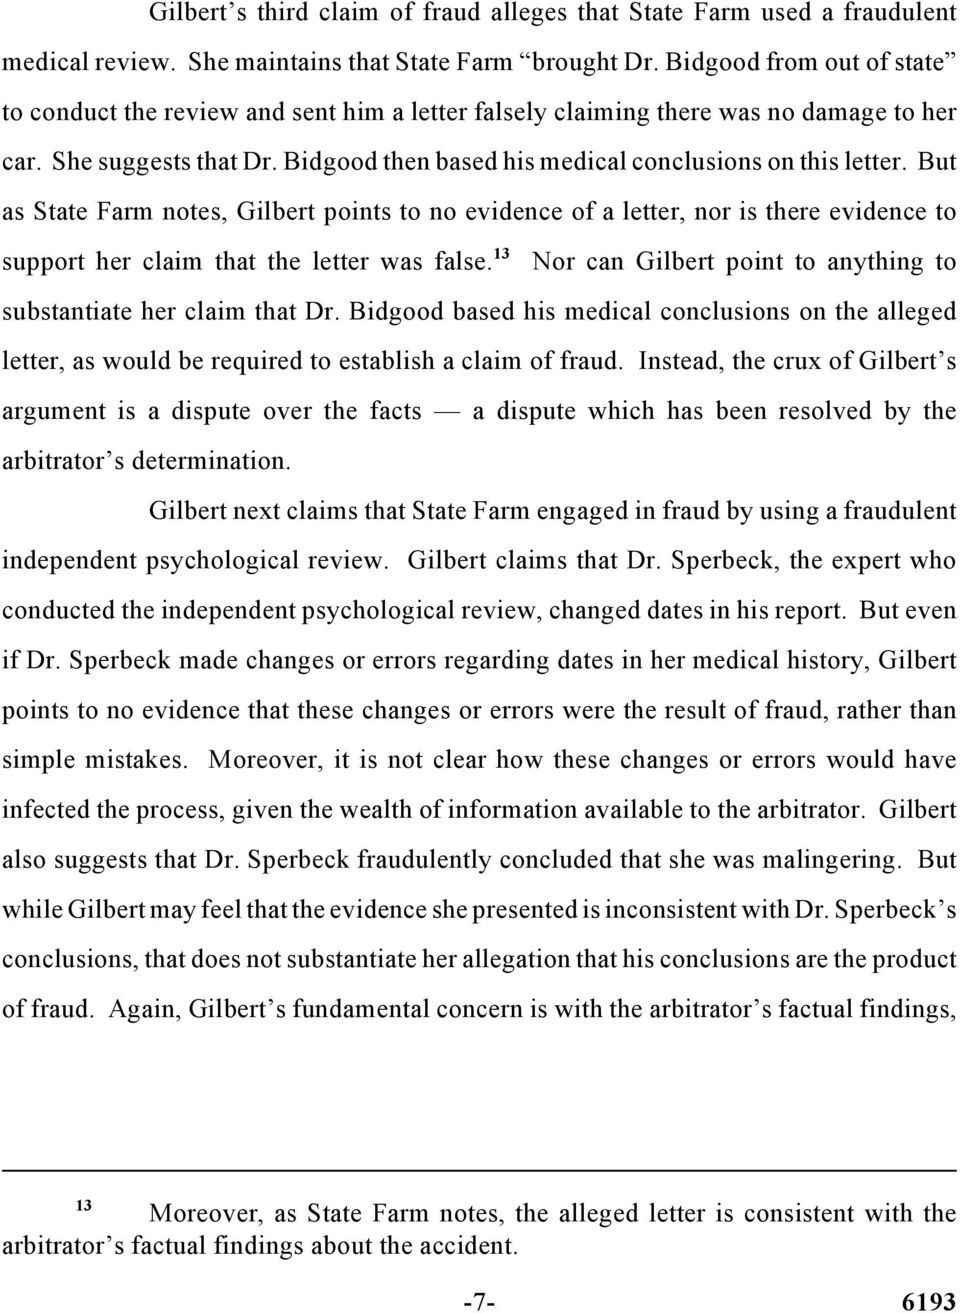 But as State Farm notes, Gilbert points to no evidence of a letter, nor is there evidence to 13 support her claim that the letter was false.